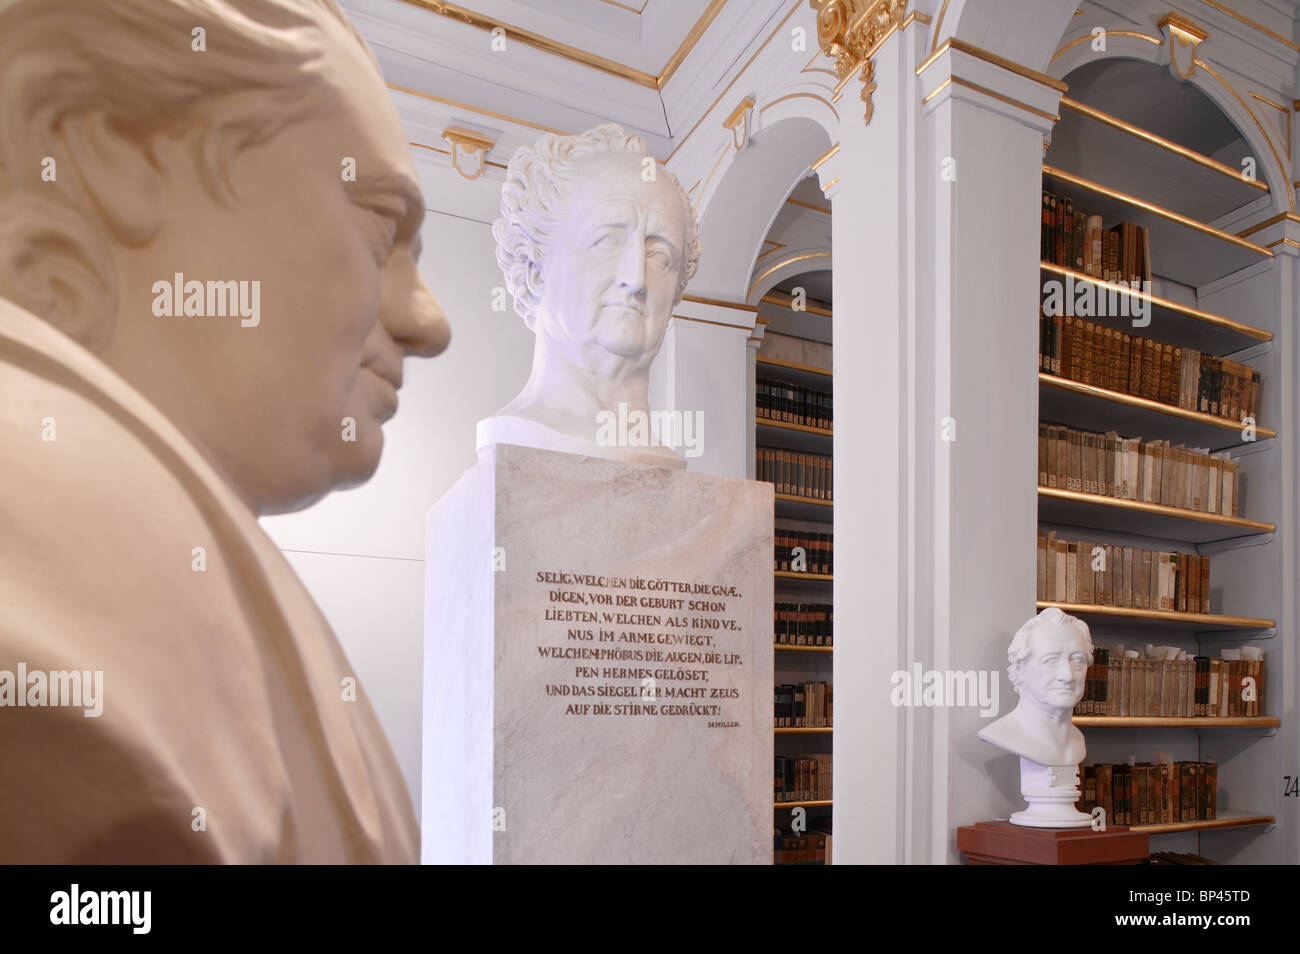 Rococo room inside the Duchess Anna Amalia Library in Weimar, Germany - Stock Image